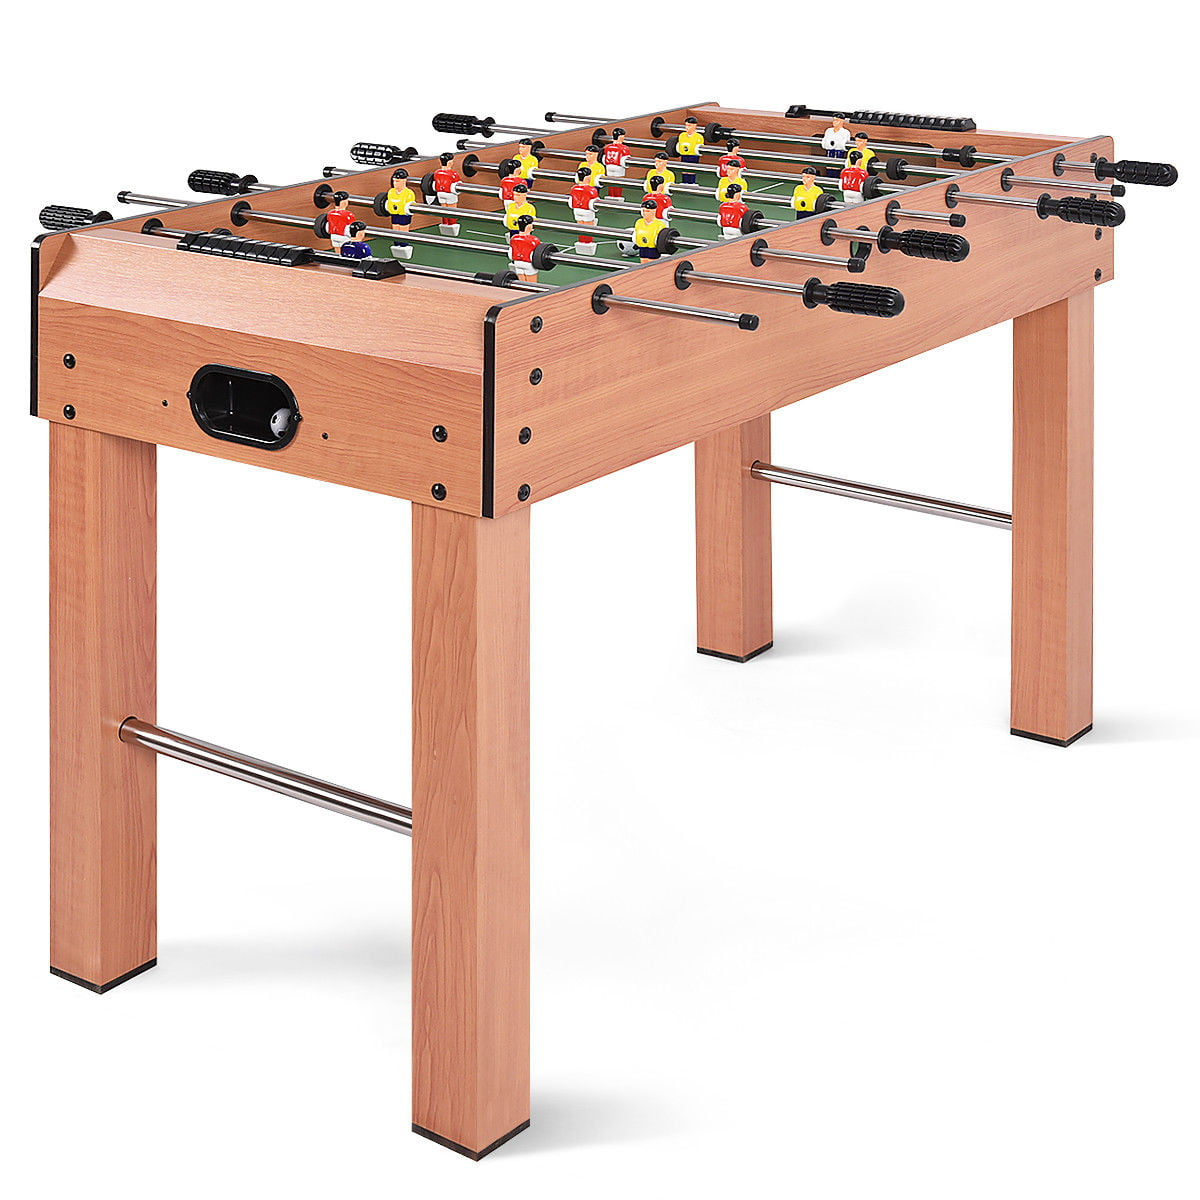 Costway 48 Foosball Table Competition Game Soccer Arcade Sized Football Sports Indoor Walmart Com Walmart Com